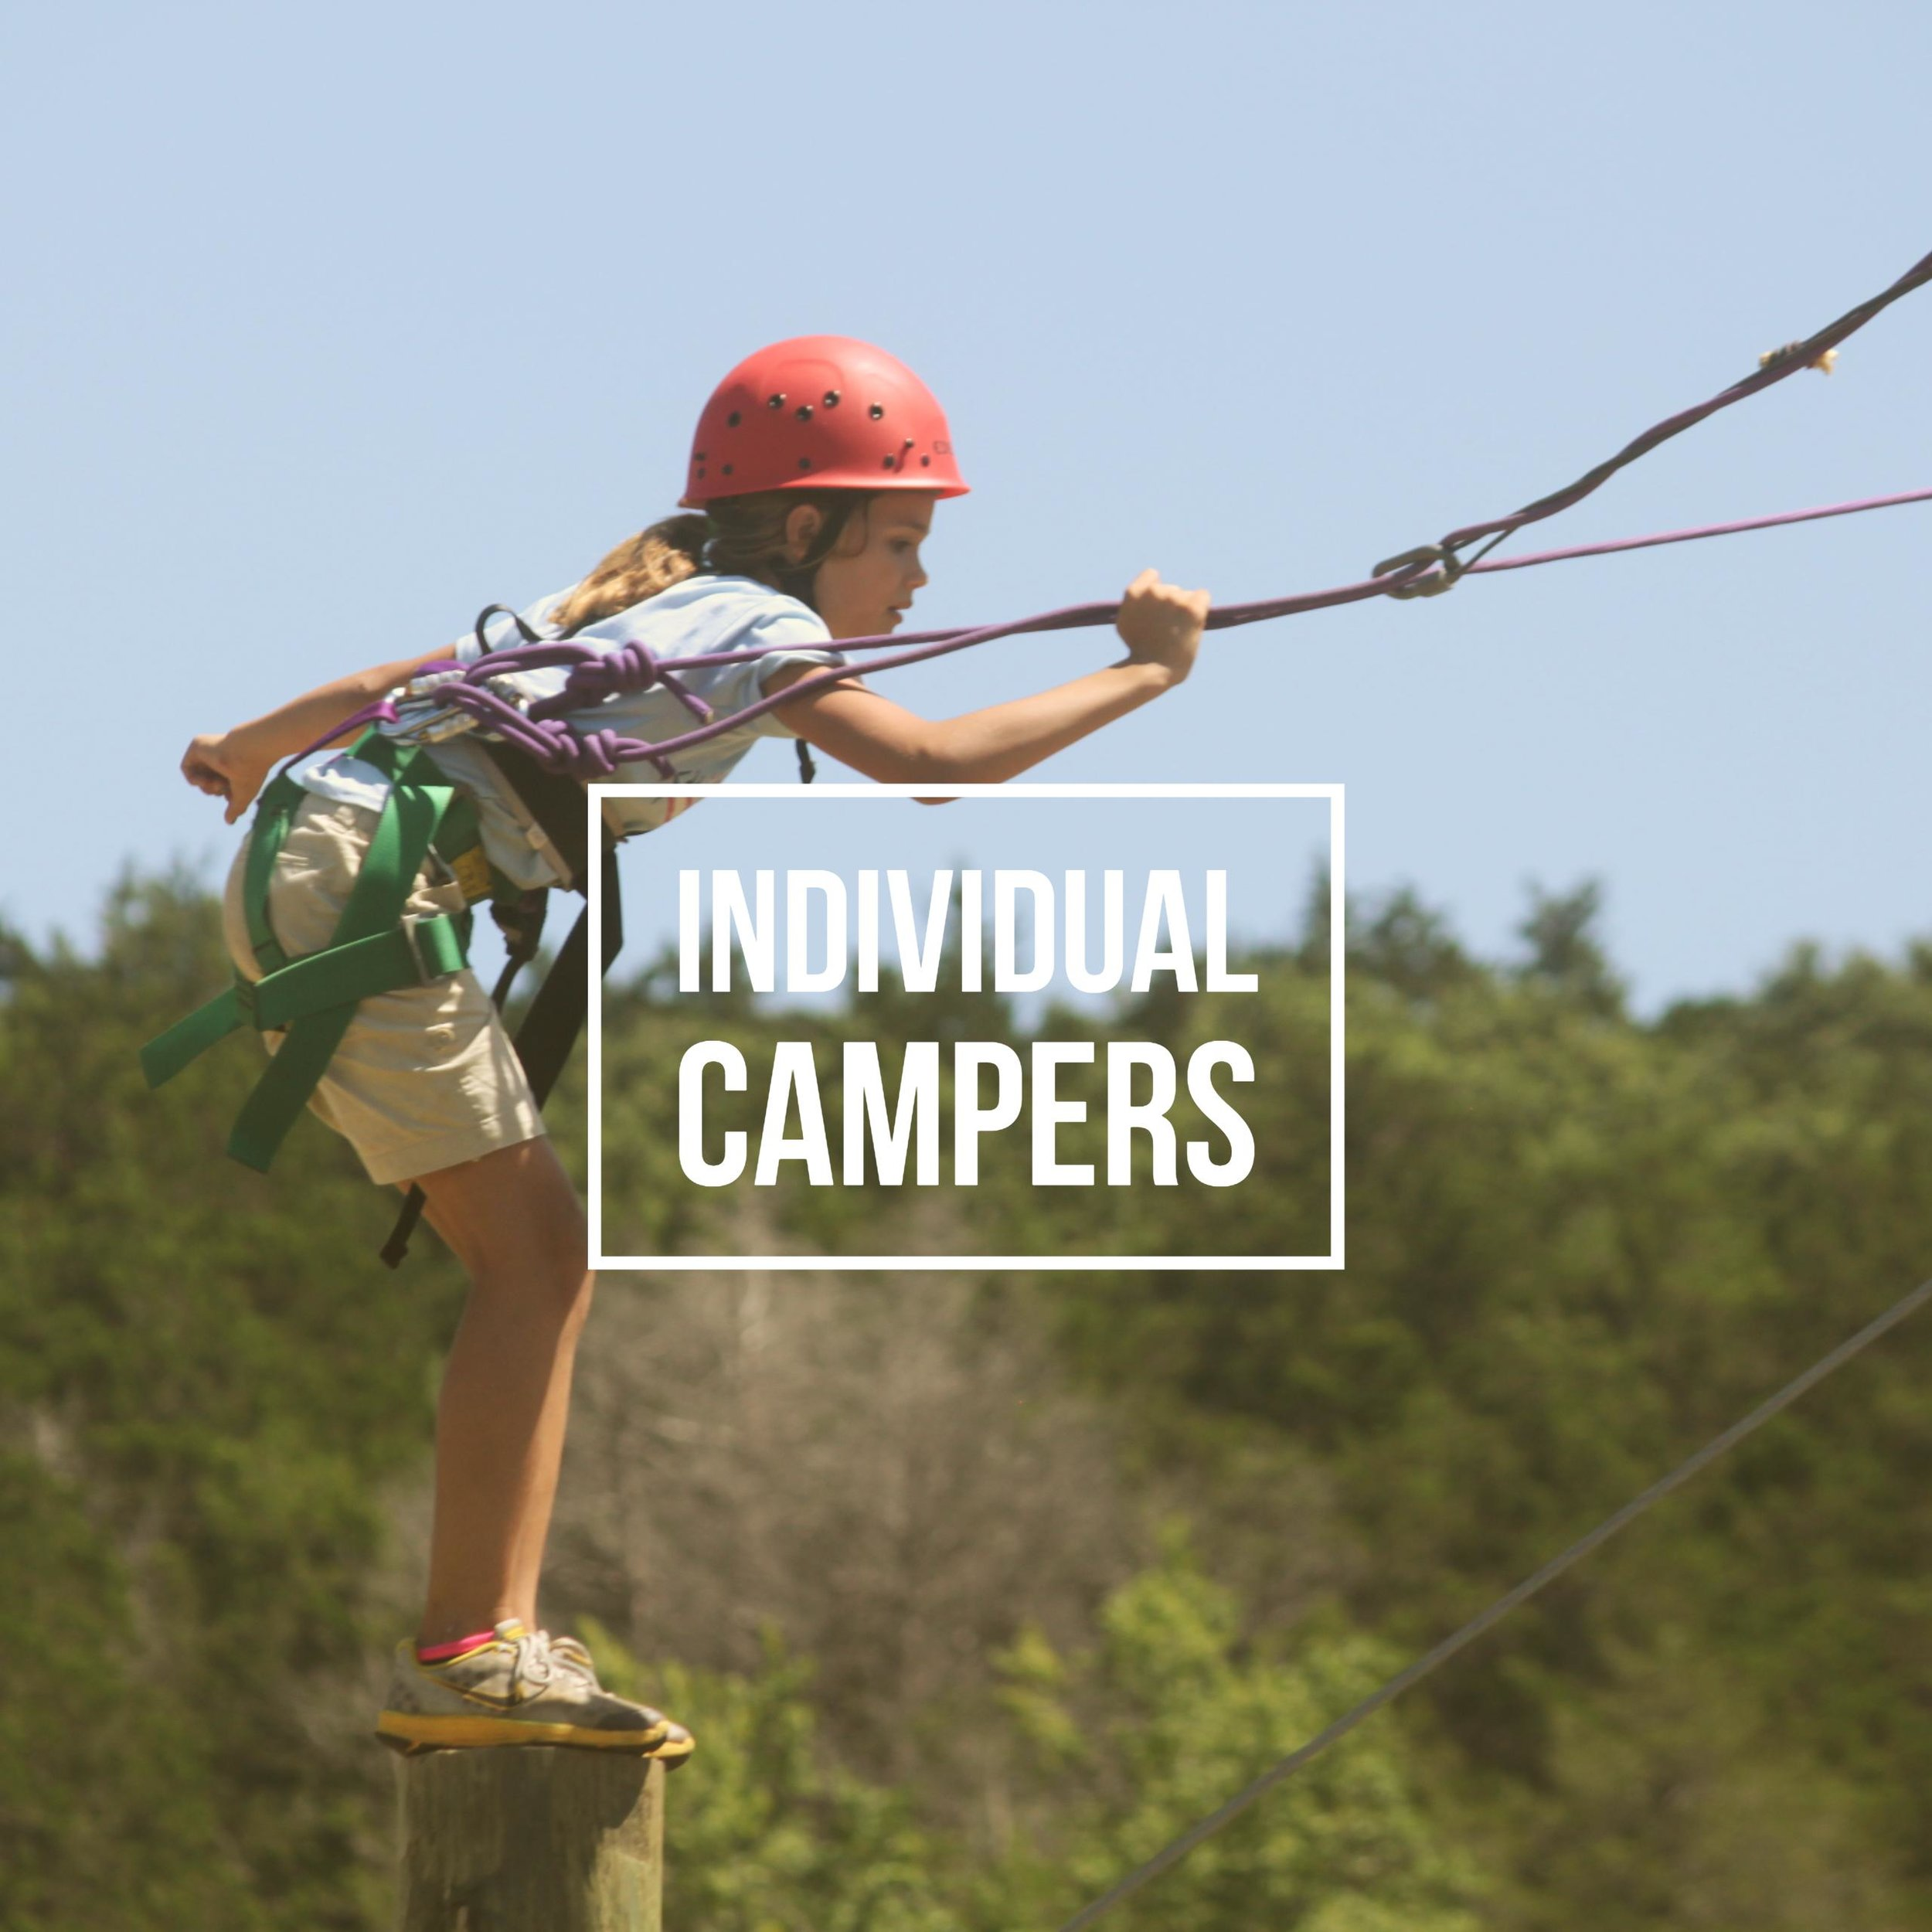 Click above to get information about individual camper registration! This is for families/groups of friends sending their kids to camp under supervision of Oakridge-provided camp counselors.